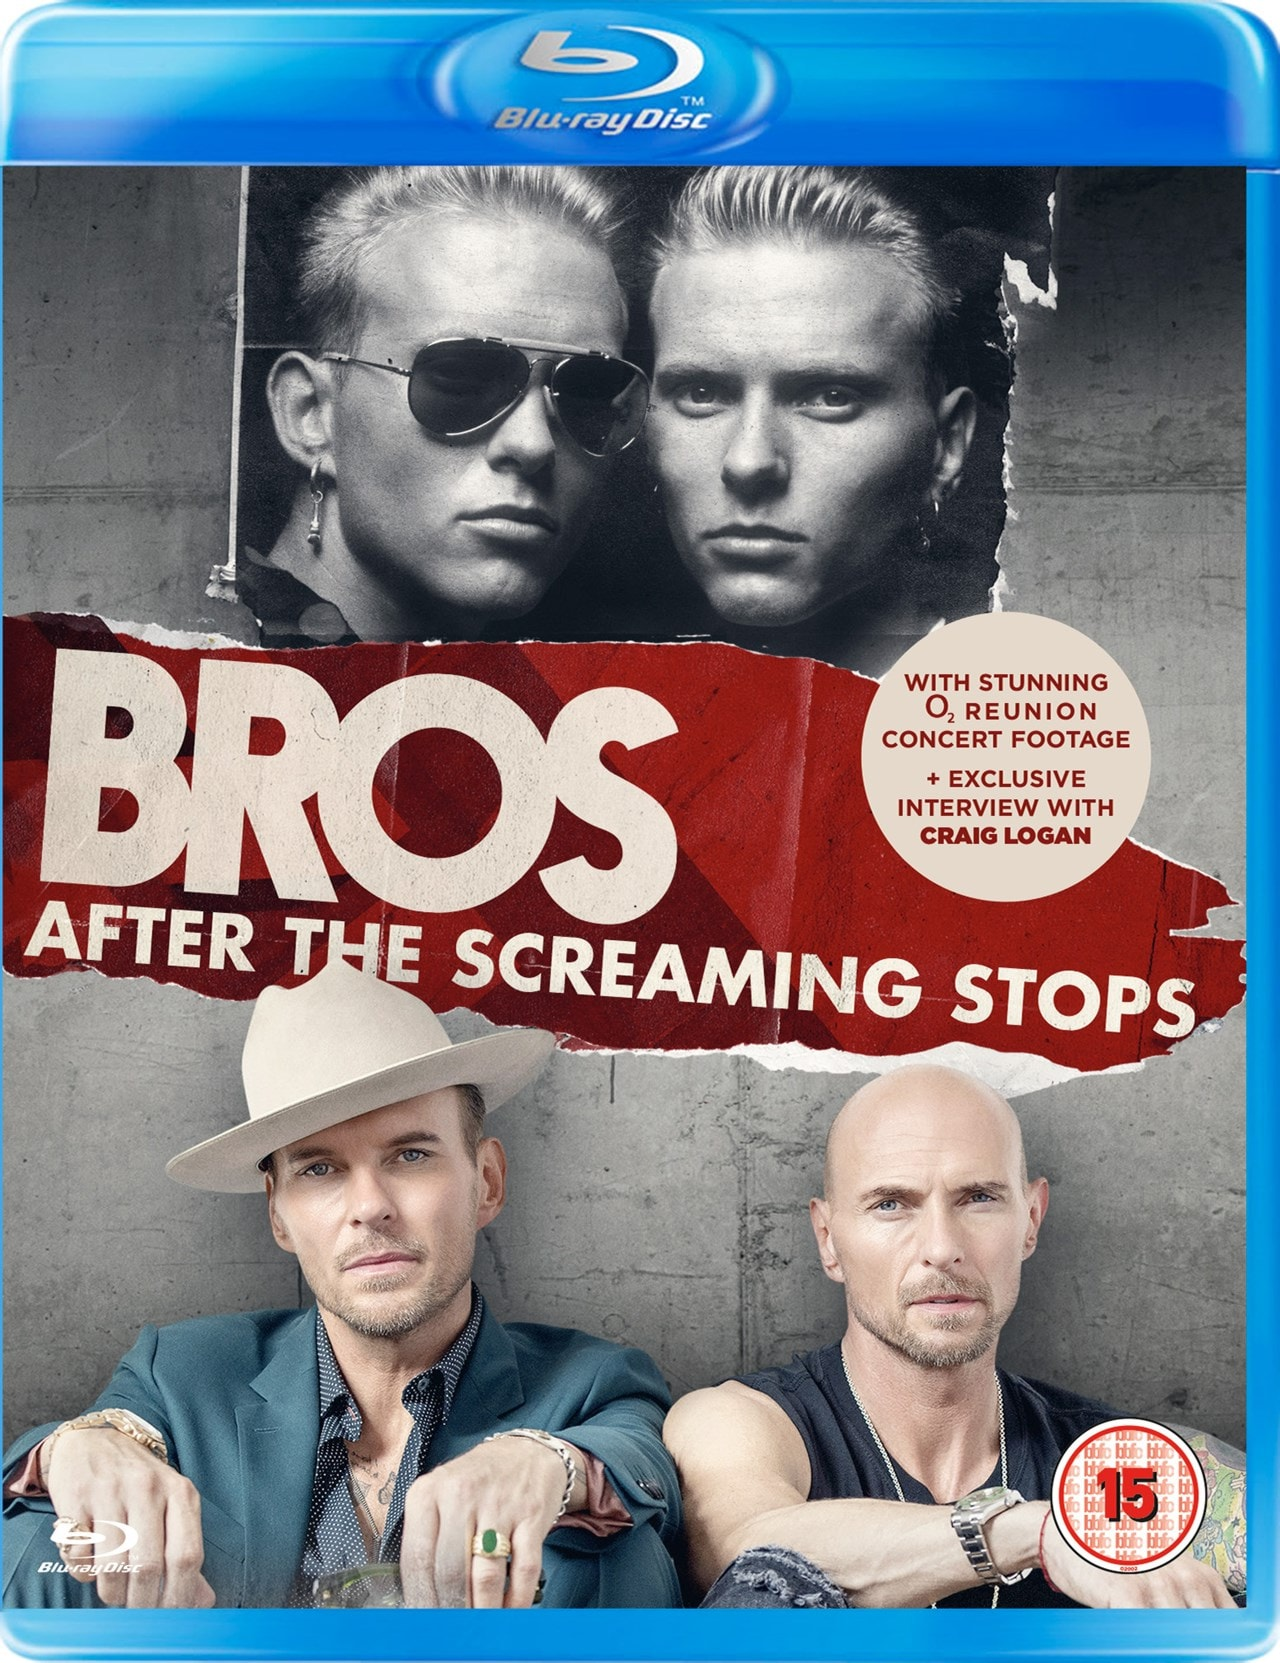 Bros: After the Screaming Stops - 1